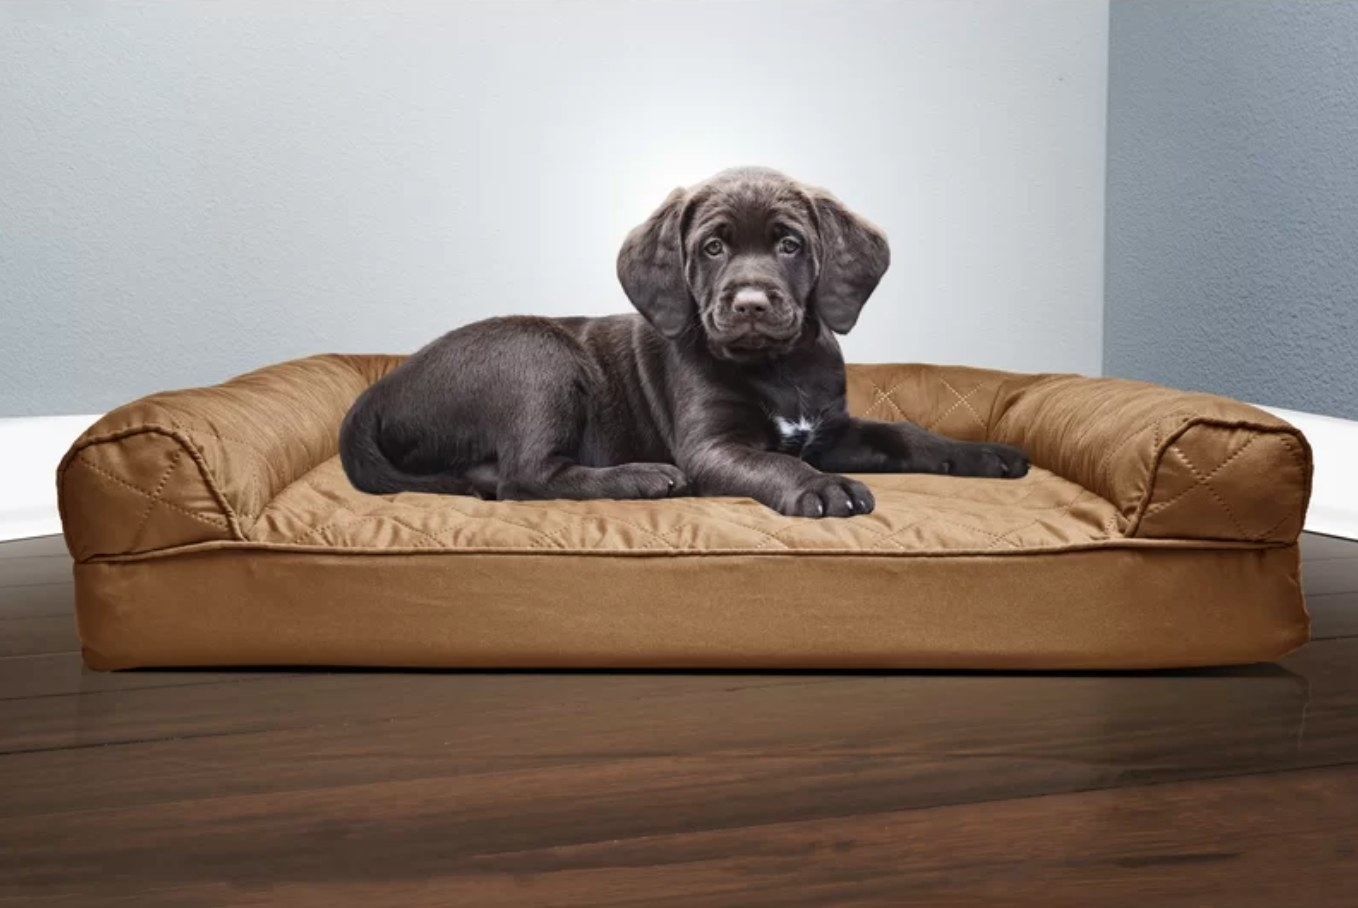 The brown dog sofa with a brown lab sitting on it